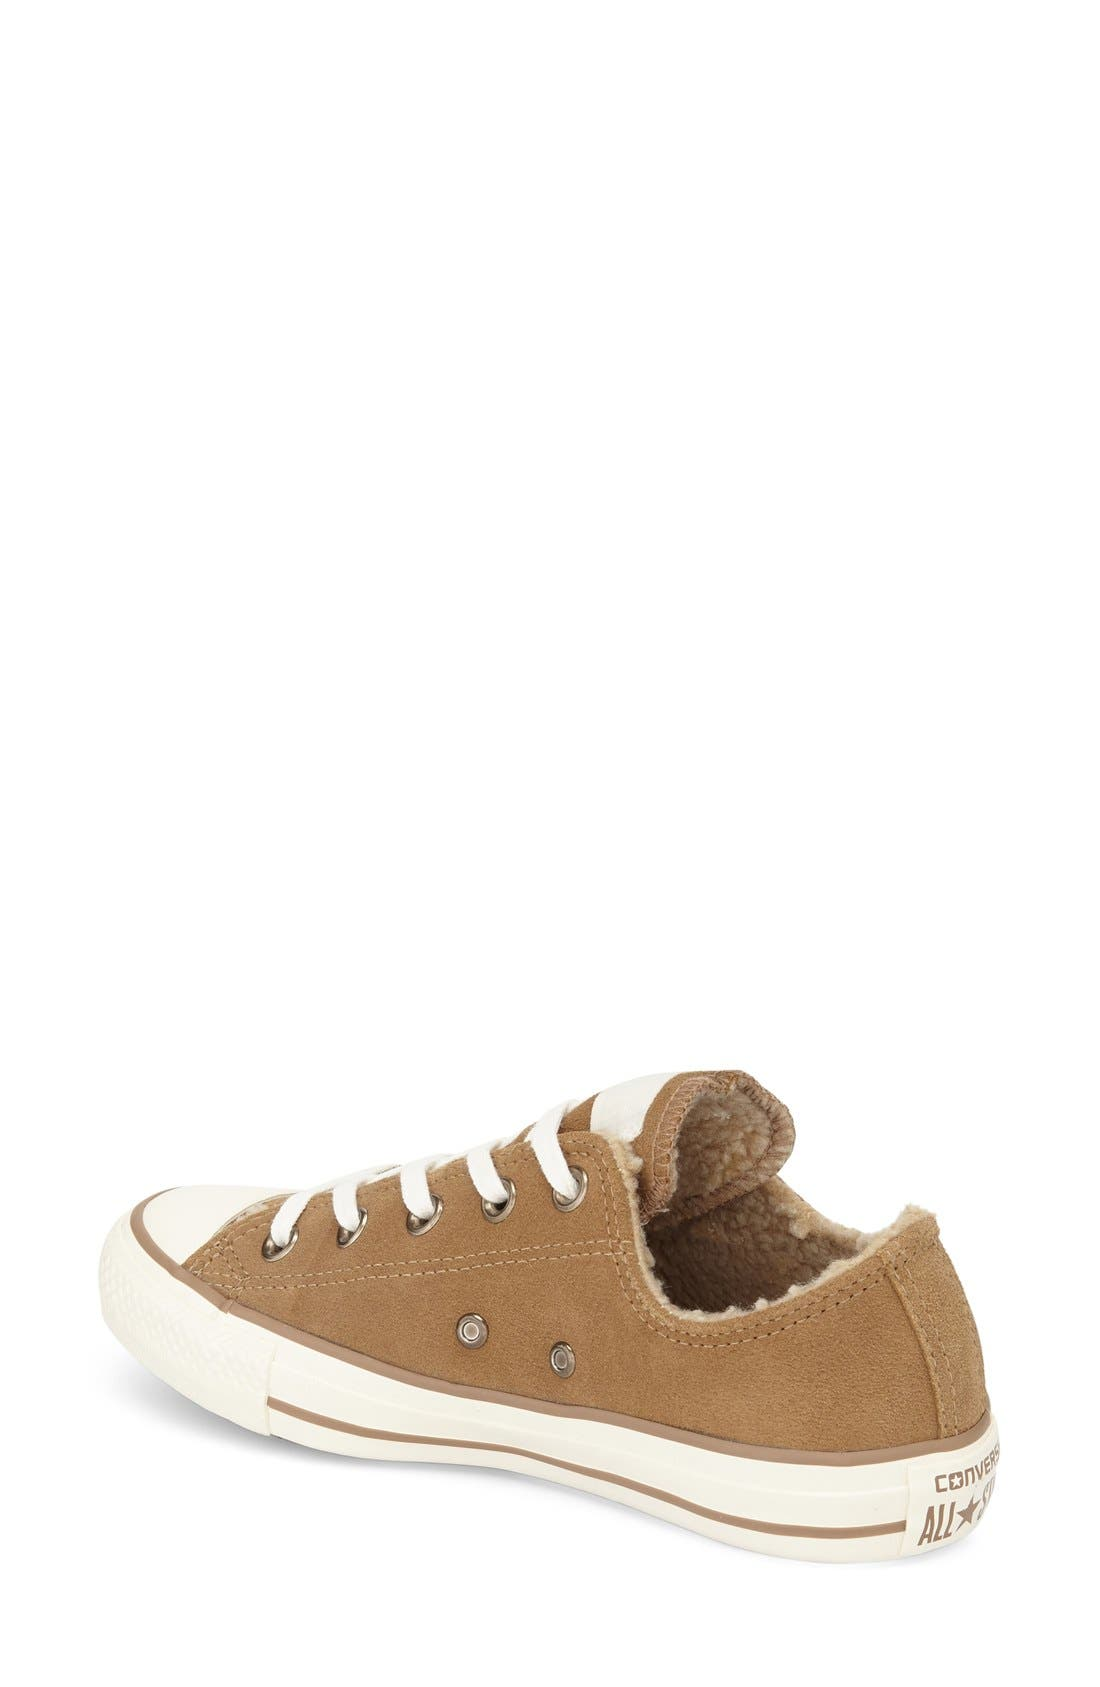 Alternate Image 2  - Converse Chuck Taylor® All Star® Faux Shearling Lined Low Top Sneaker (Women)